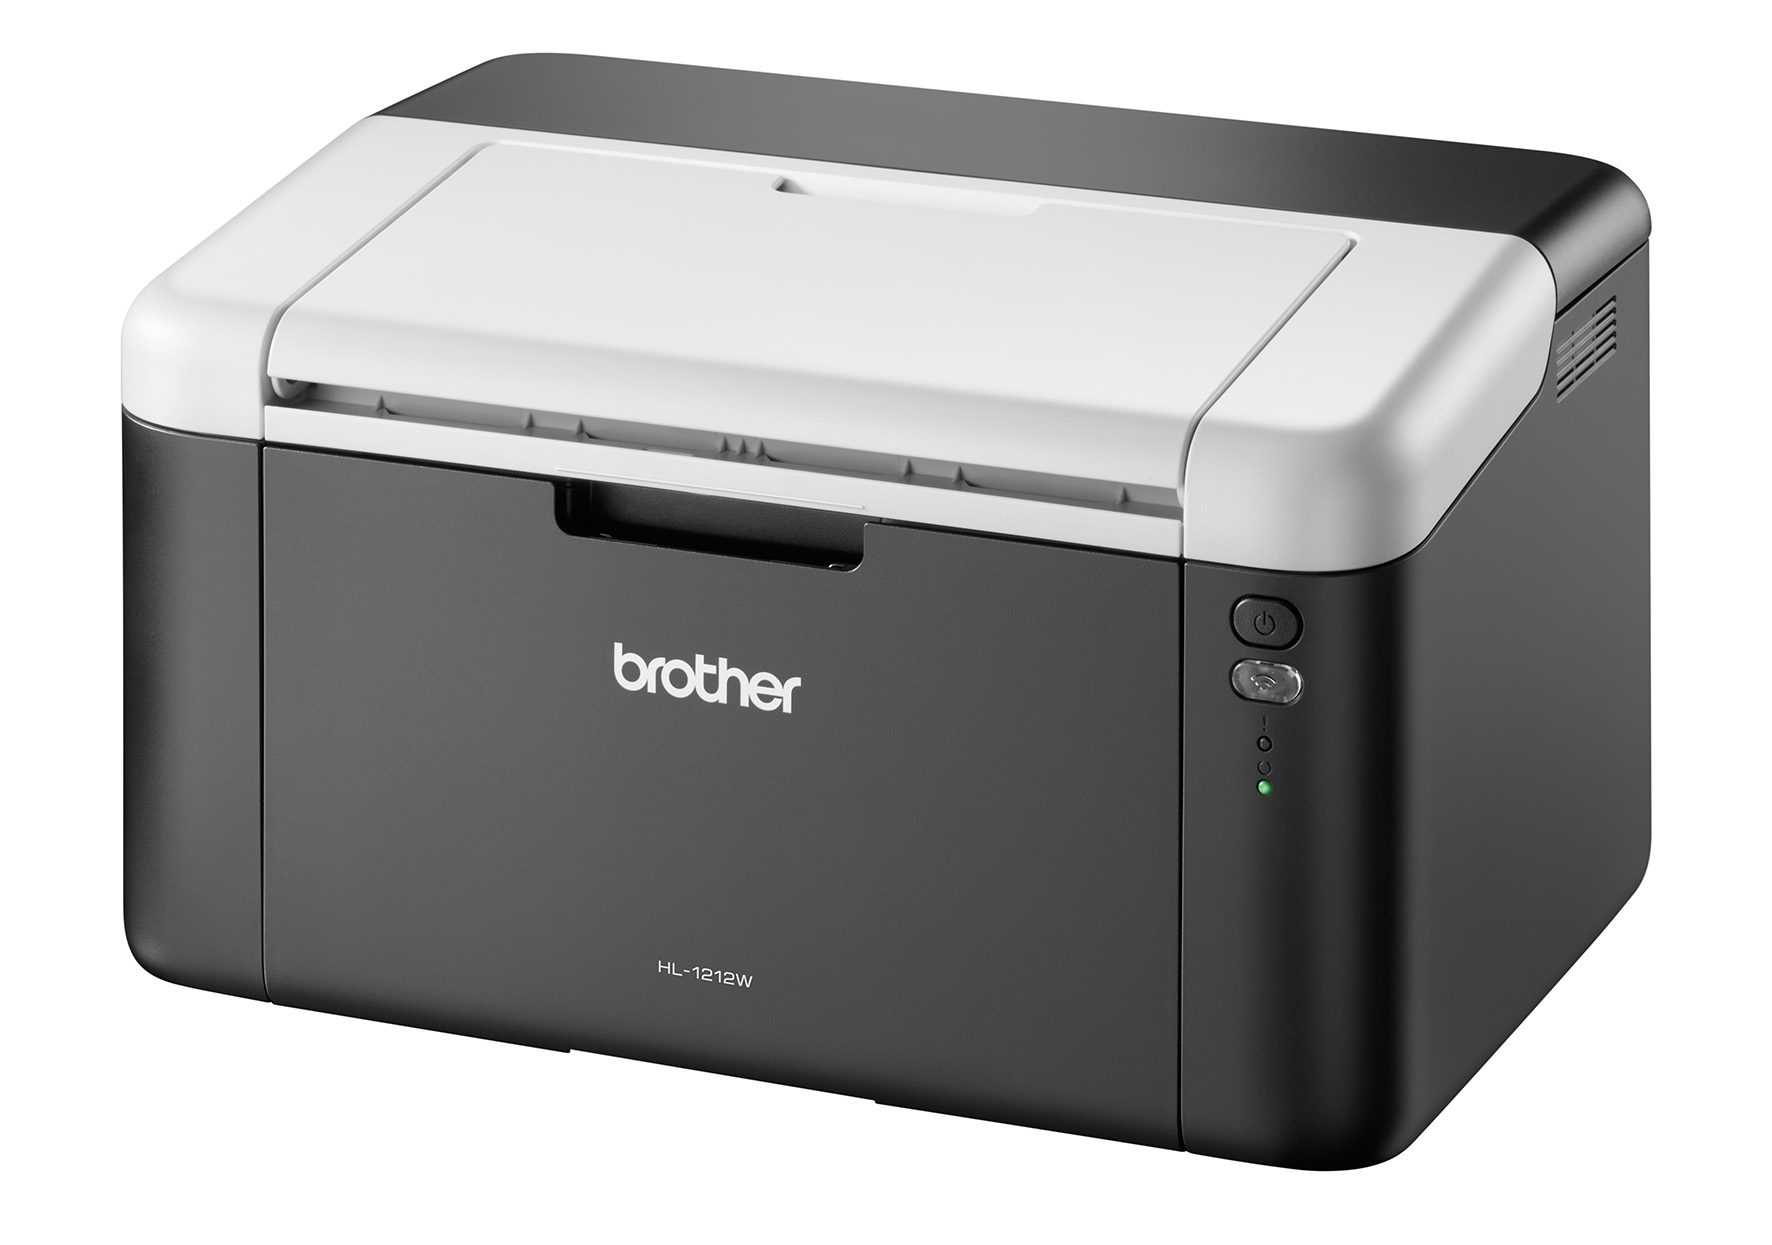 Brother HL-1212W impresora láser/led